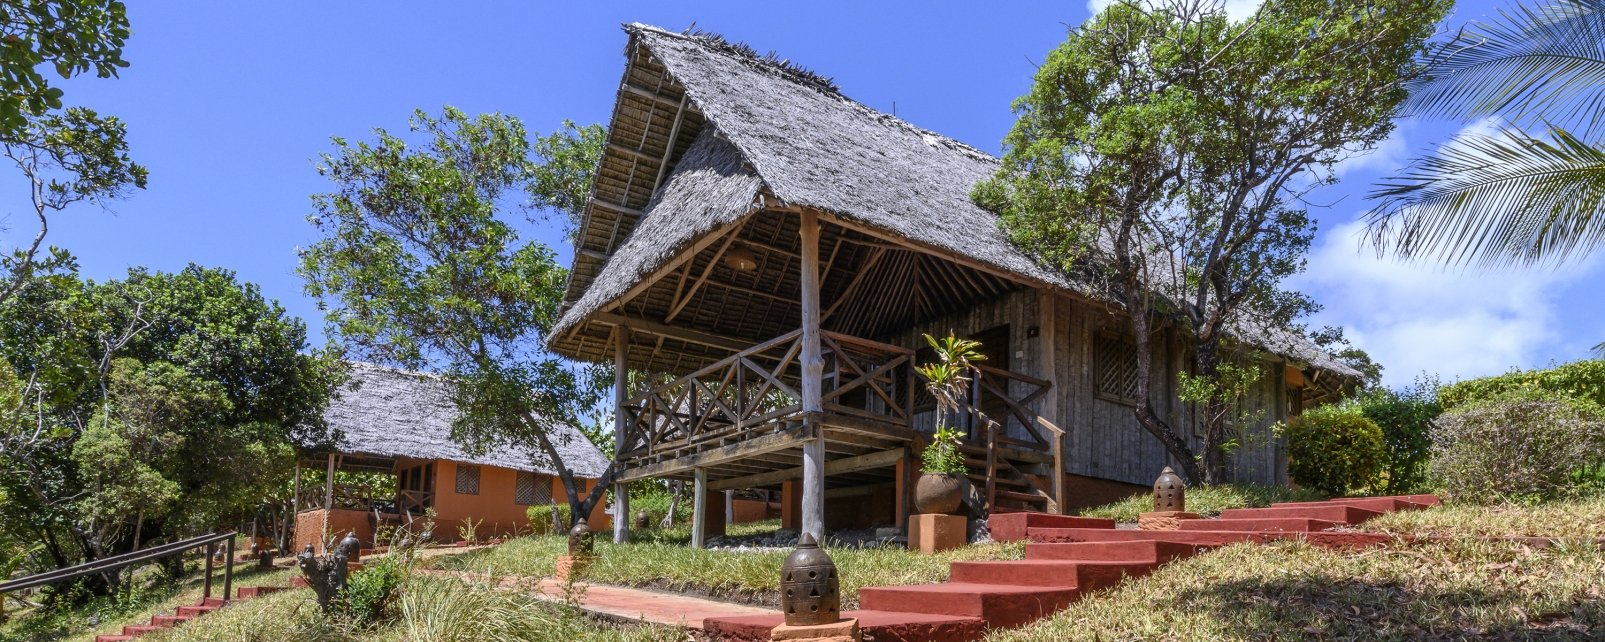 Hôtel Kichanga Lodge